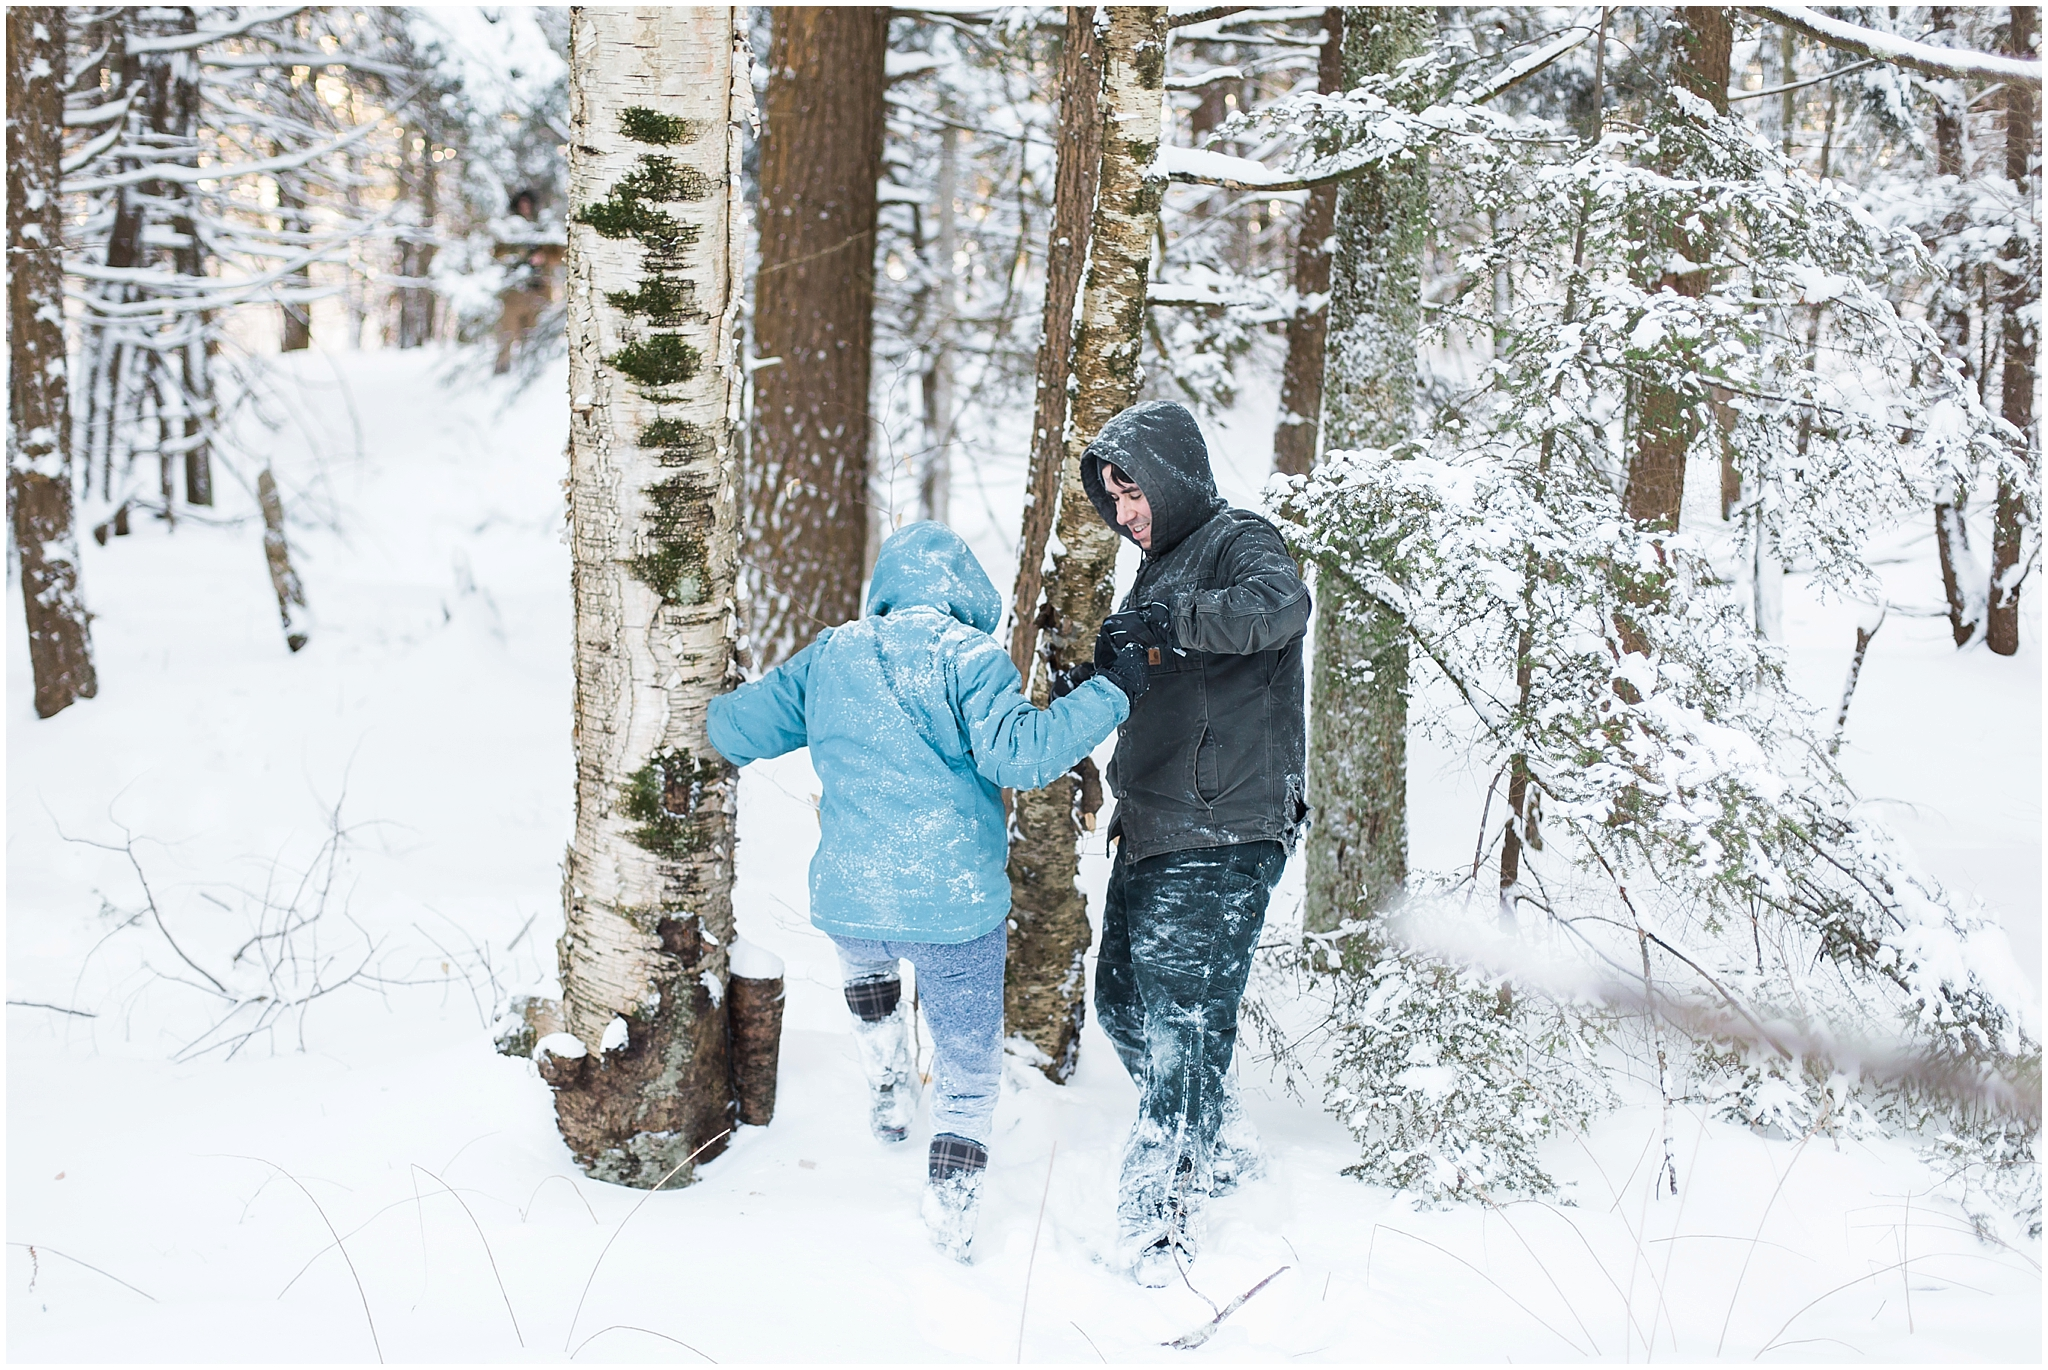 canada winter forrest. two people hiking